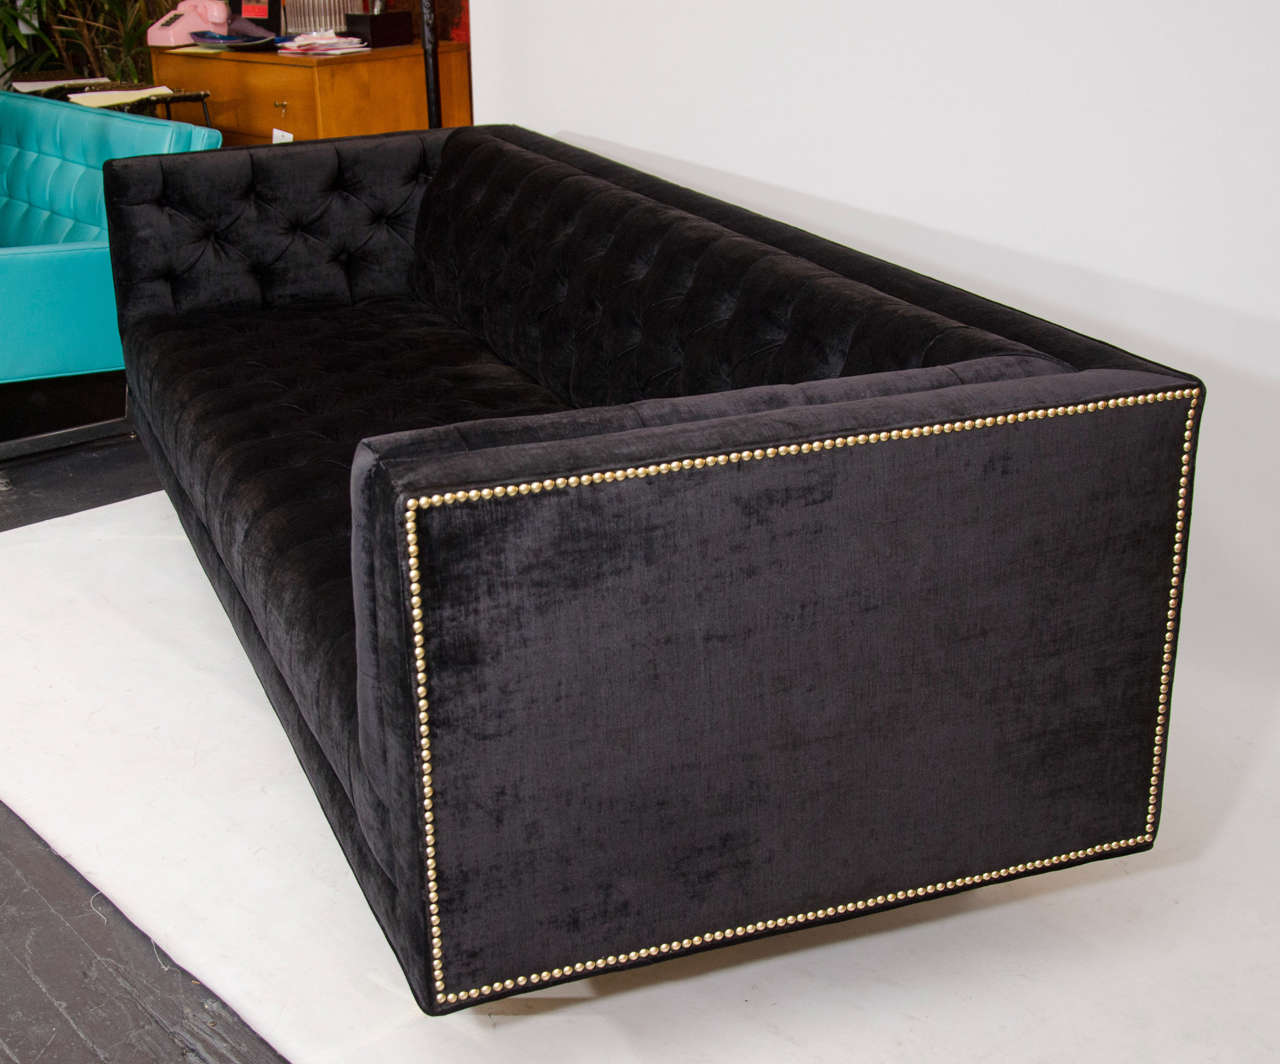 Modernist Tufted Tuxedo Sofa with Brass Accents 4